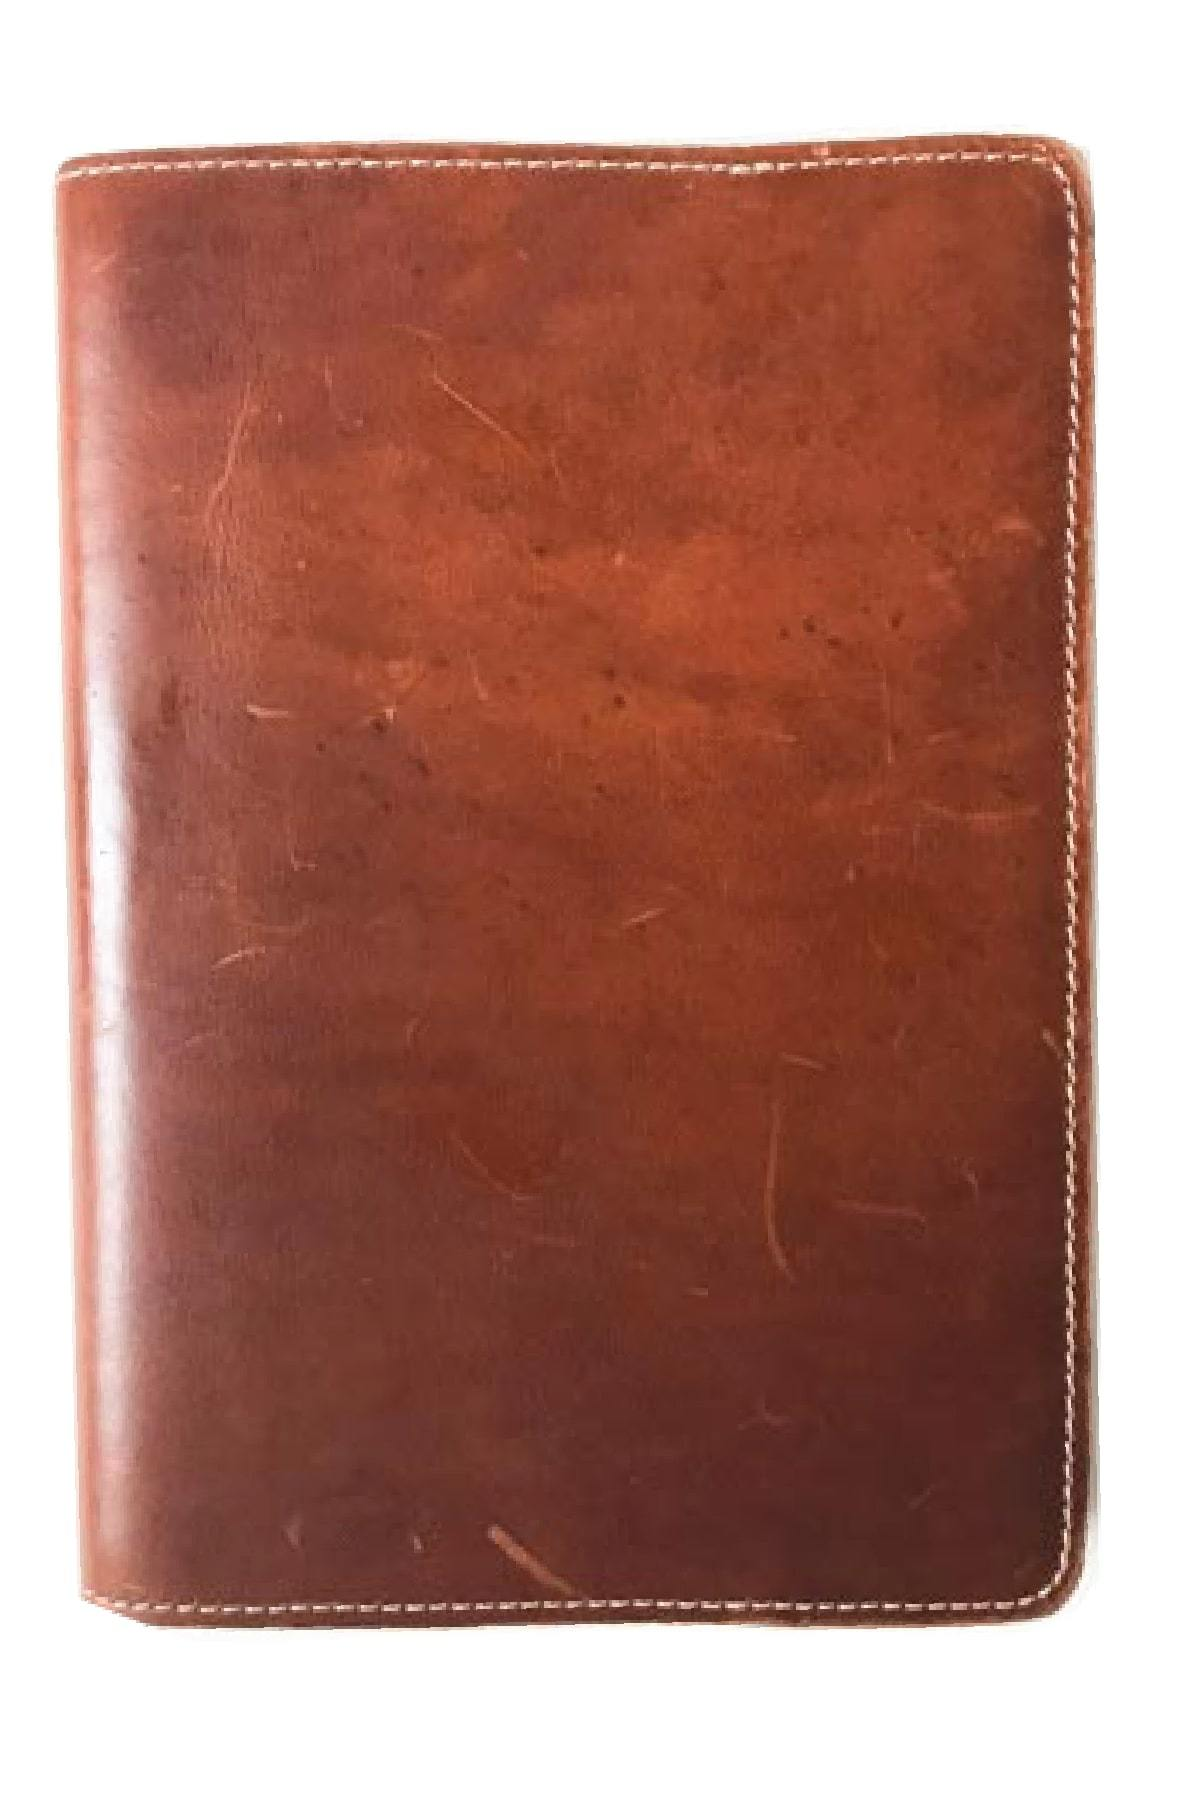 paper-sunday-Leather Journal: Tobacco-christian-personalized-scripture-Leather Journal-bible-verses-about-love-faith-hope